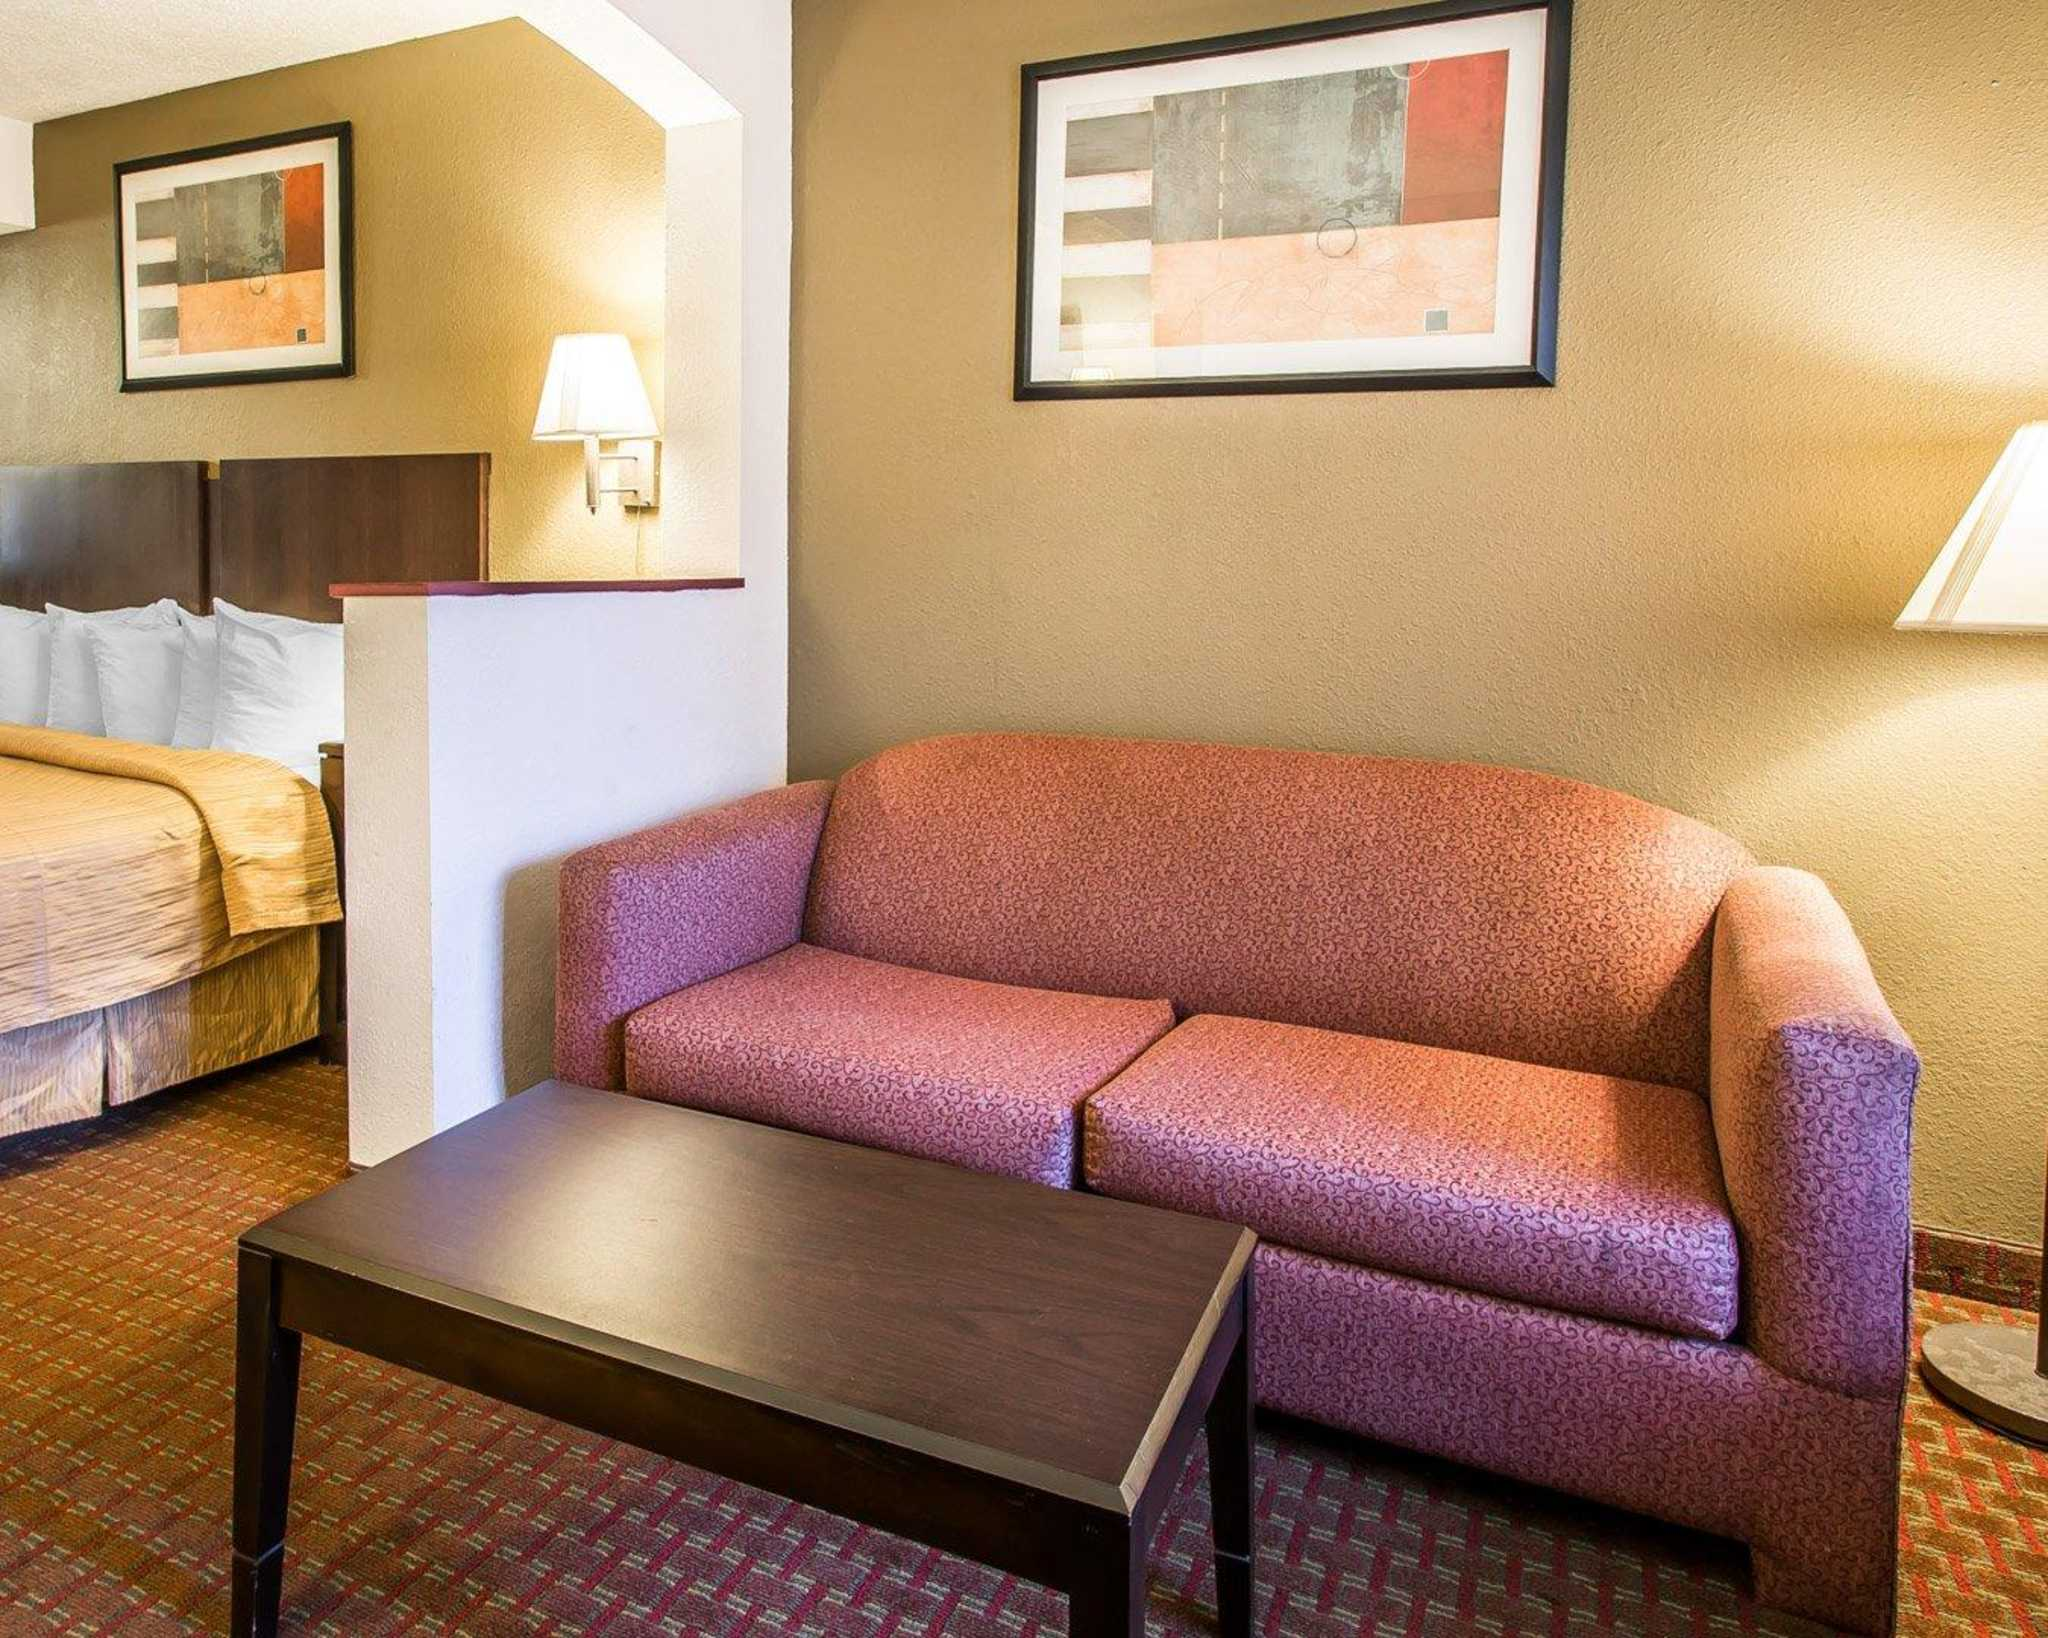 Quality Inn & Suites image 40